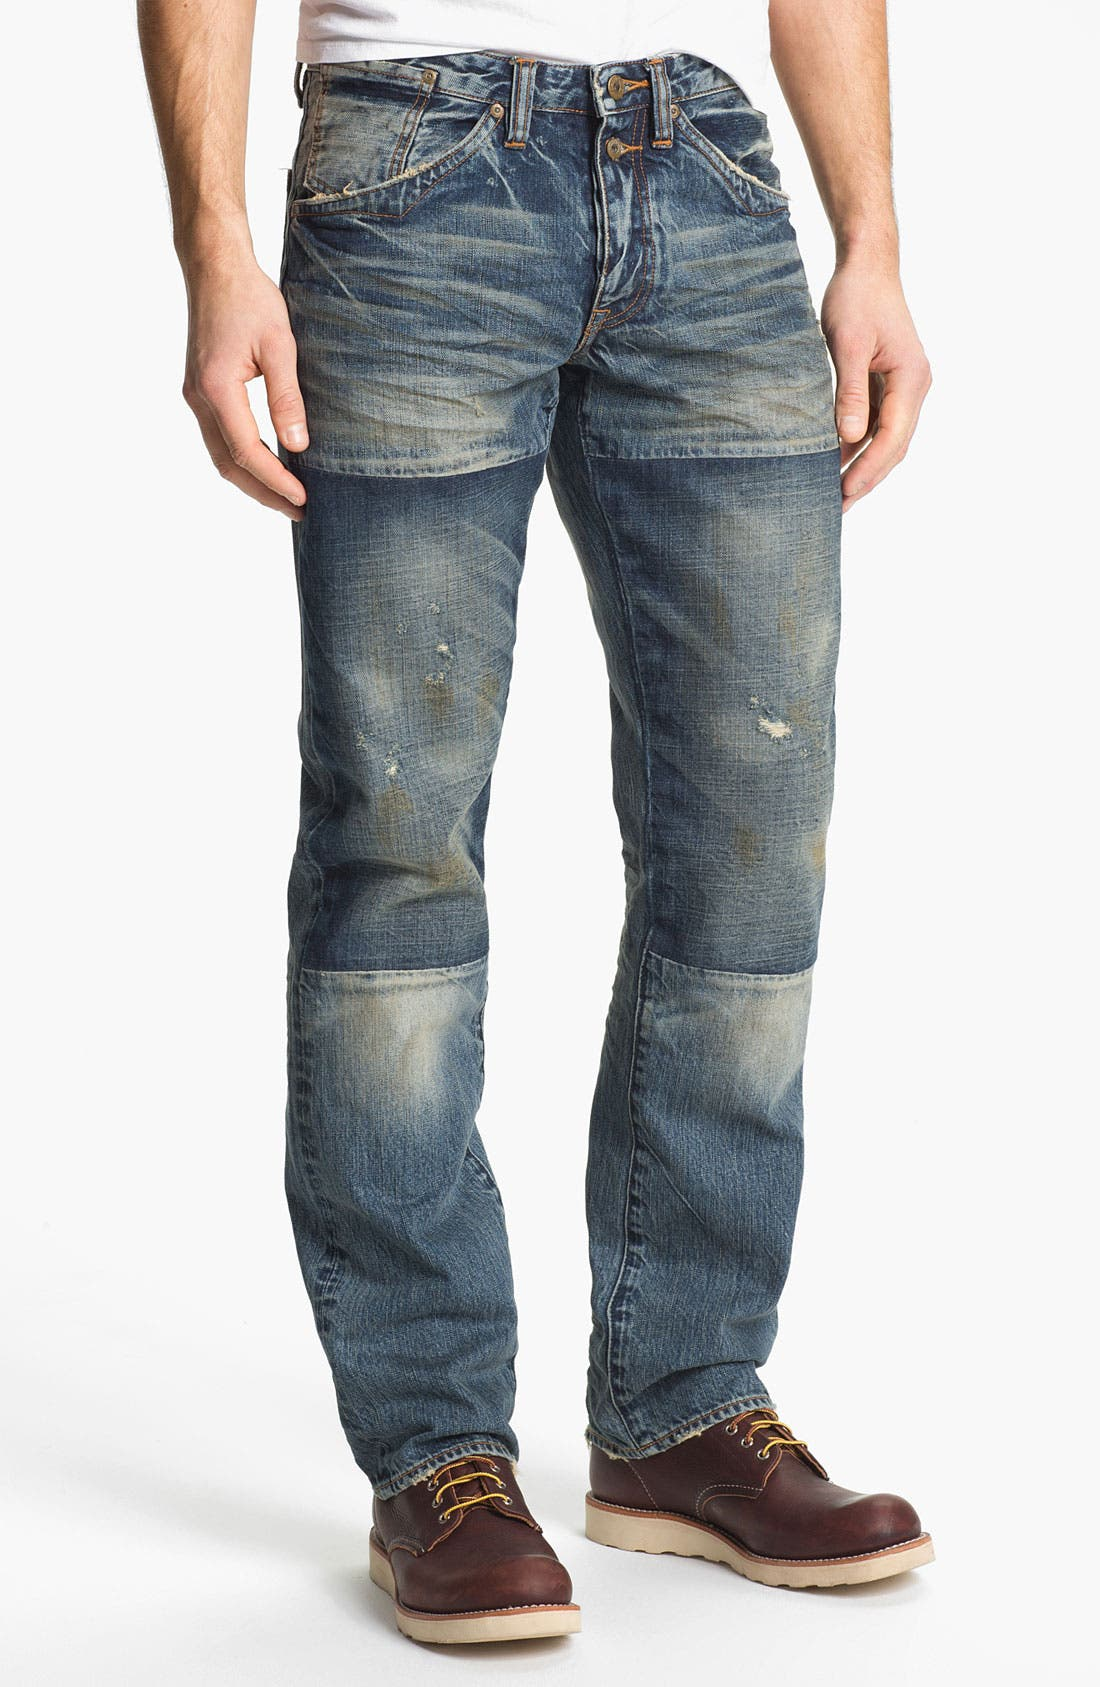 Alternate Image 1 Selected - PRPS 'Myron Barracuda' Straight Leg Jeans (Light Wash)